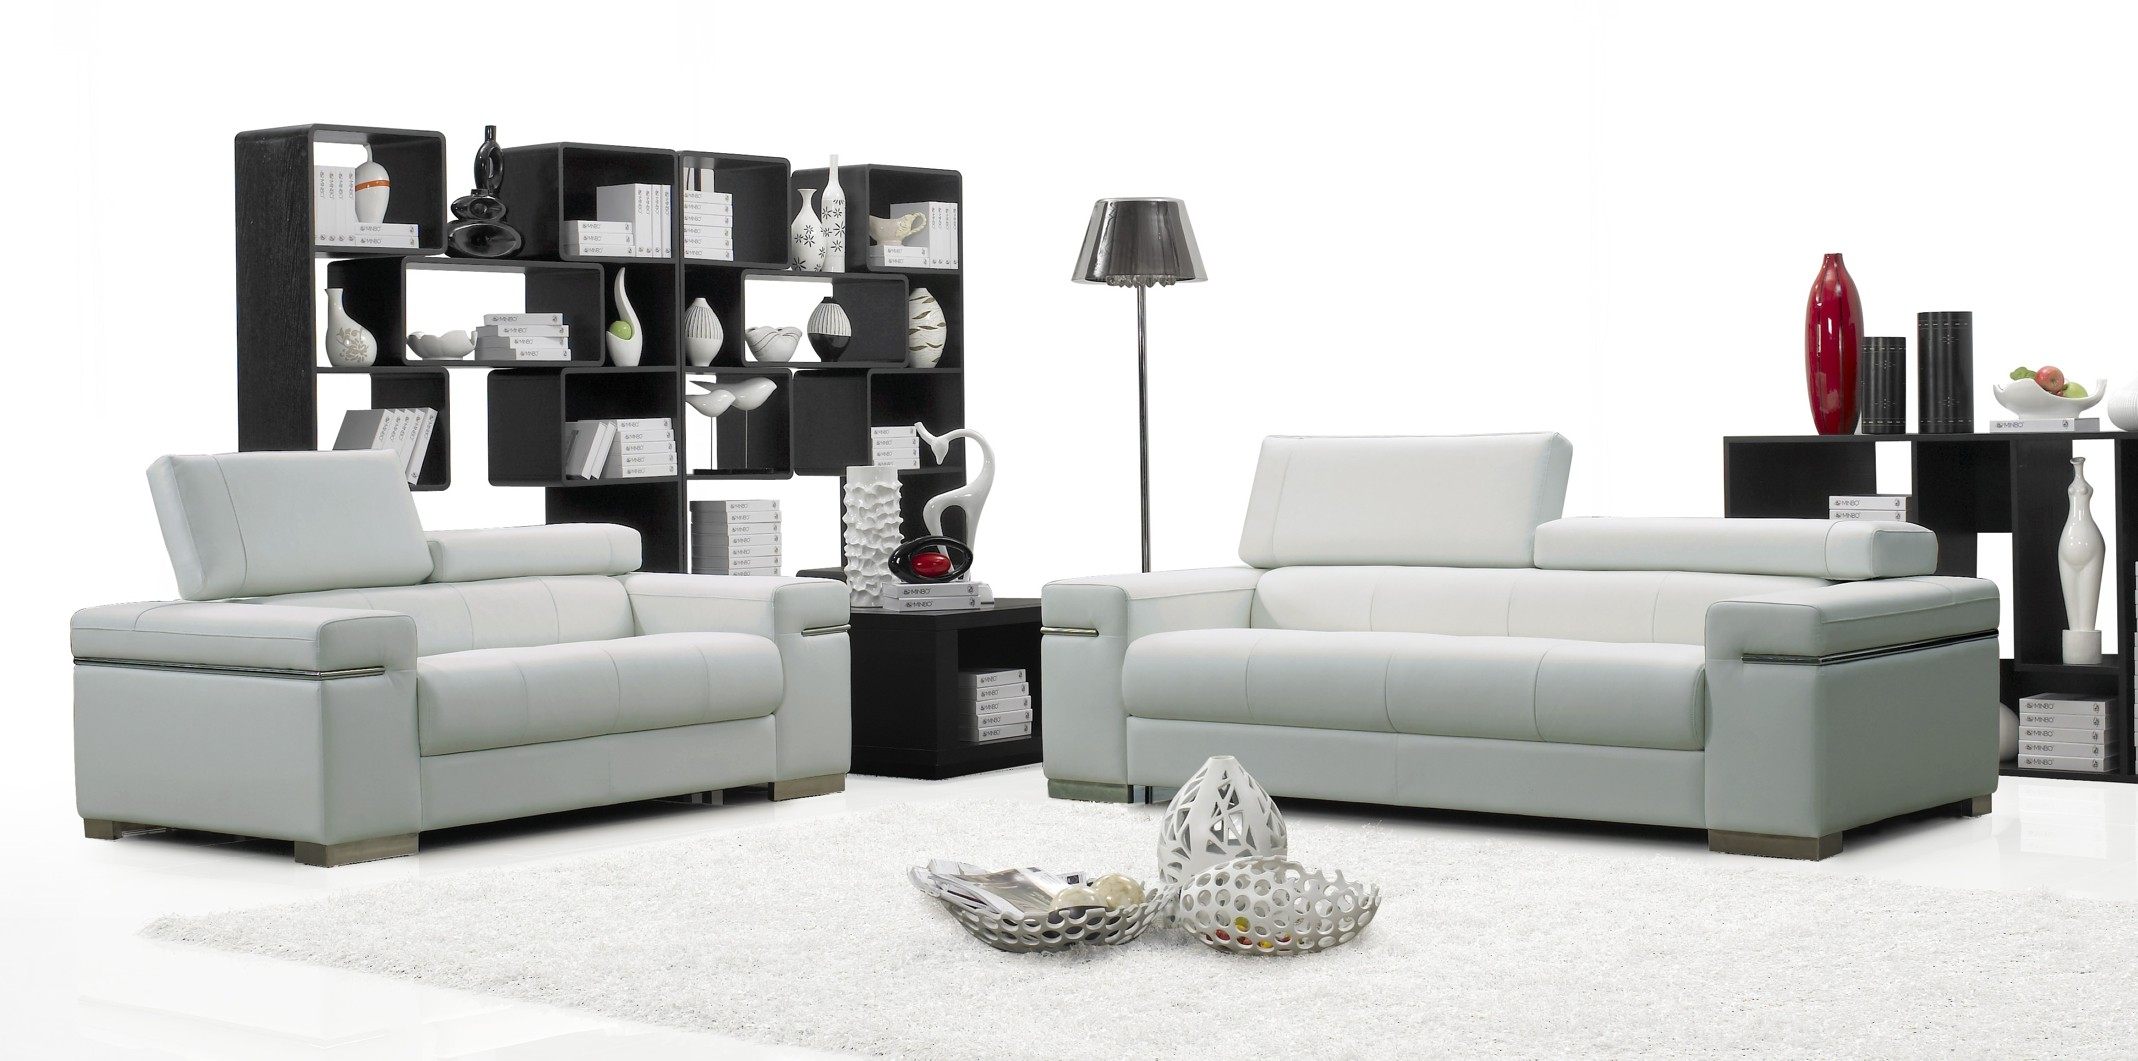 true modern furniture online homesfeed. Black Bedroom Furniture Sets. Home Design Ideas